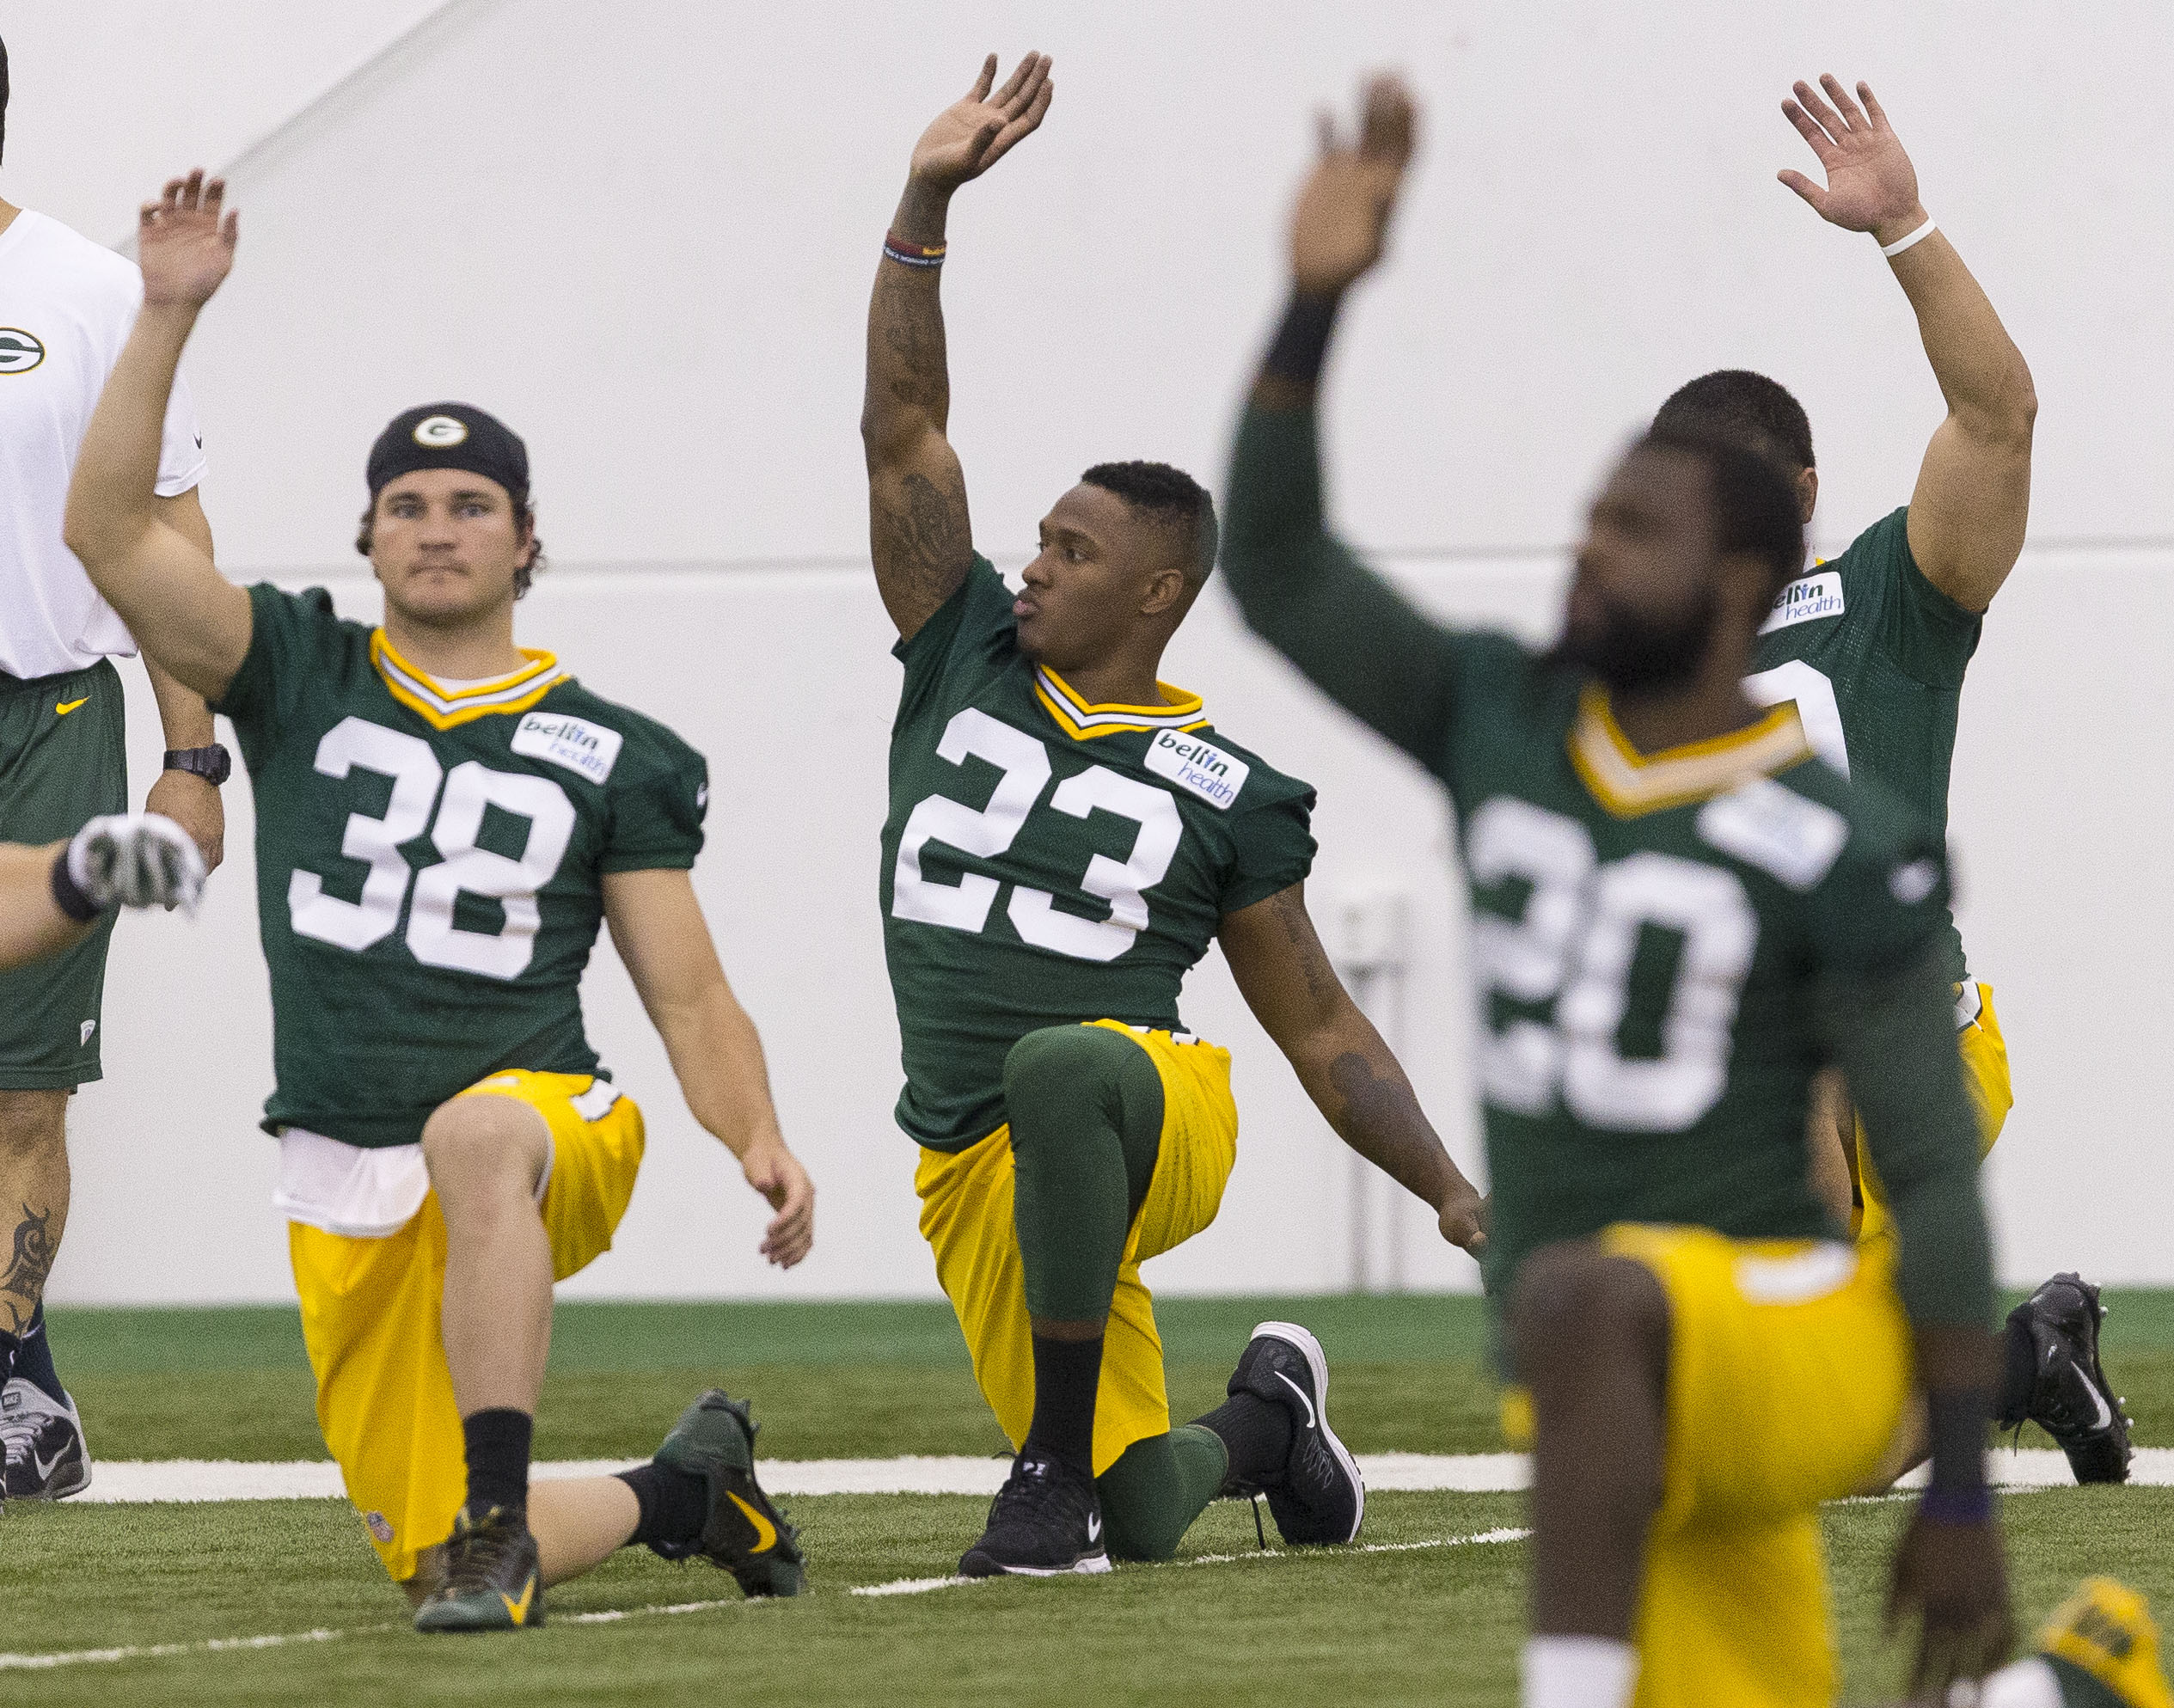 Green Bay Packers first round draft pick Damarious Randall (23) and Skye PoVey (38) stretch during NFL football minicamp Friday, May 8, 2015 in Green Bay, Wis.   (AP Photo / Mike Roemer)